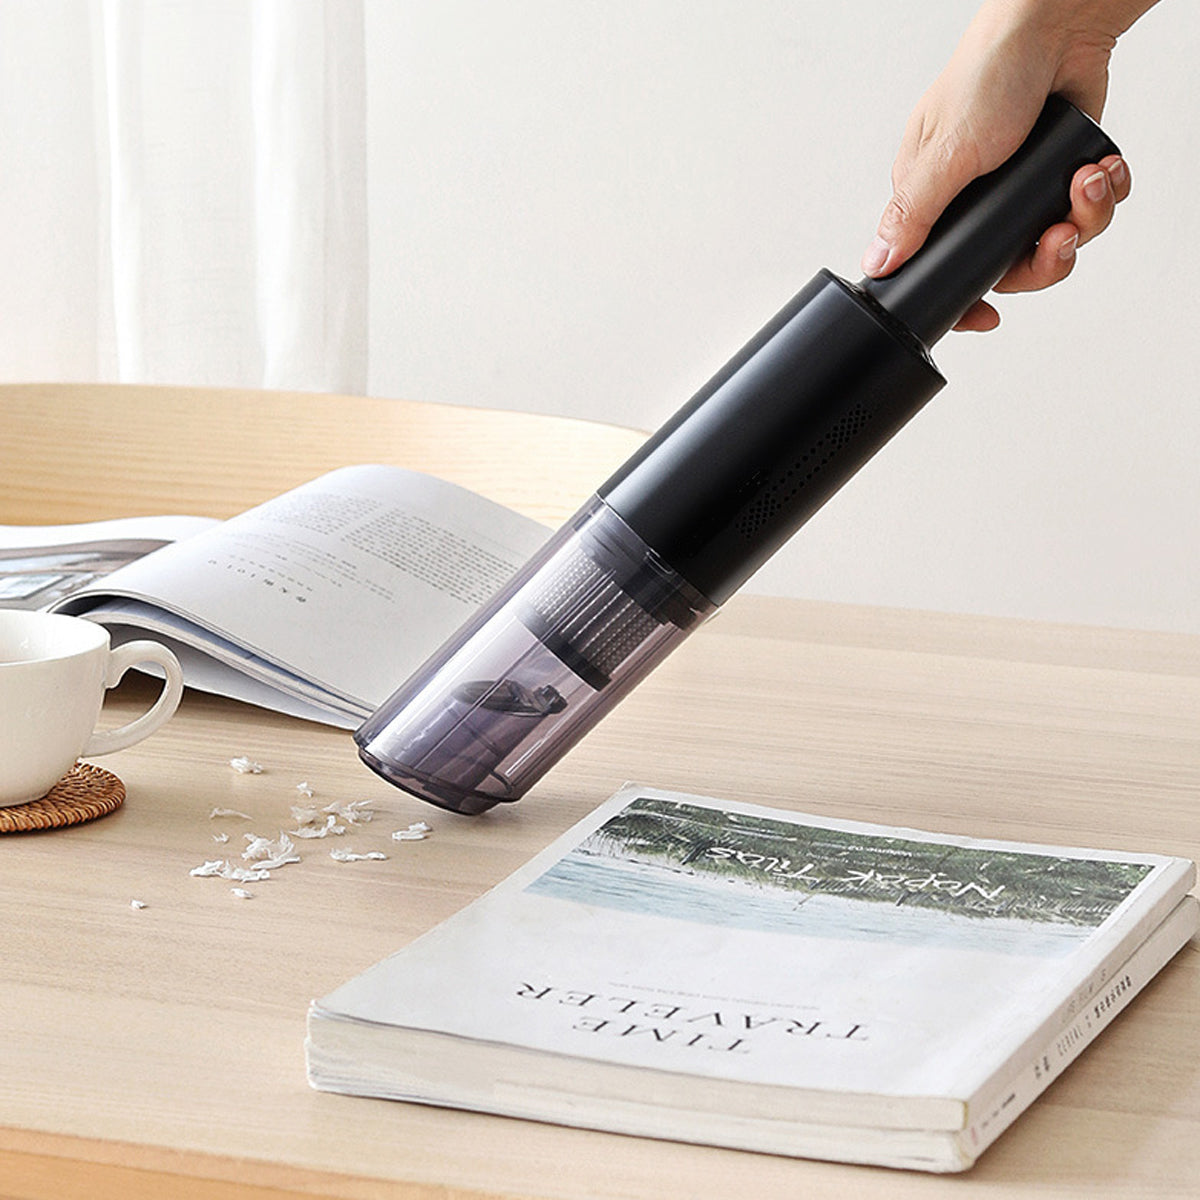 shopify-Mr. Dustbuster Handheld  Cordless Mini Vacume Cleaner For Car And Home-1